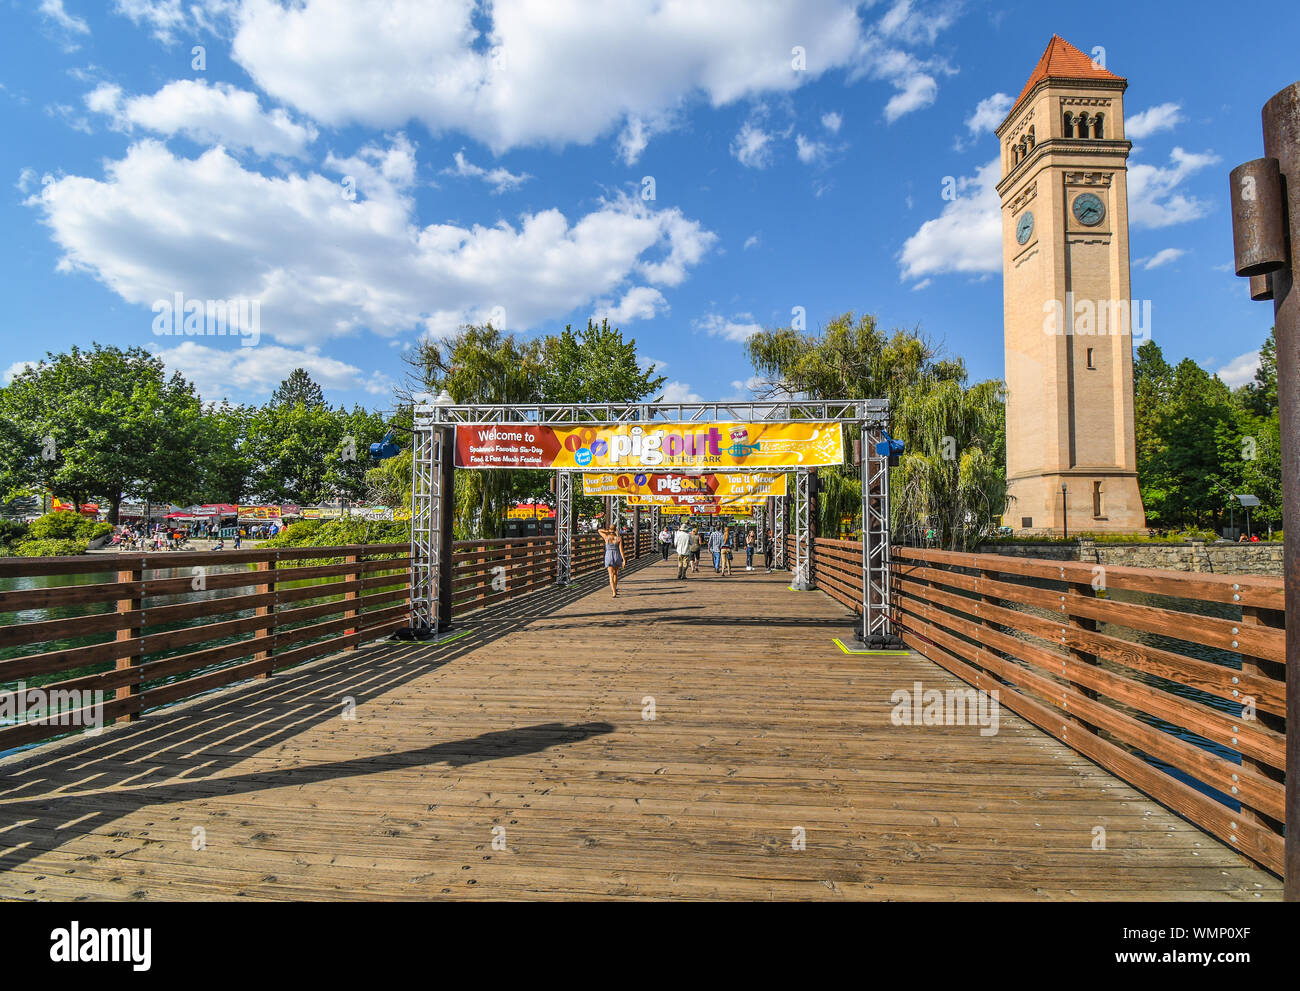 Visitors cross the bridge over the Spokane River near the clock tower at the annual Pig out in the Park festival in downtown Spokane Washington Stock Photo